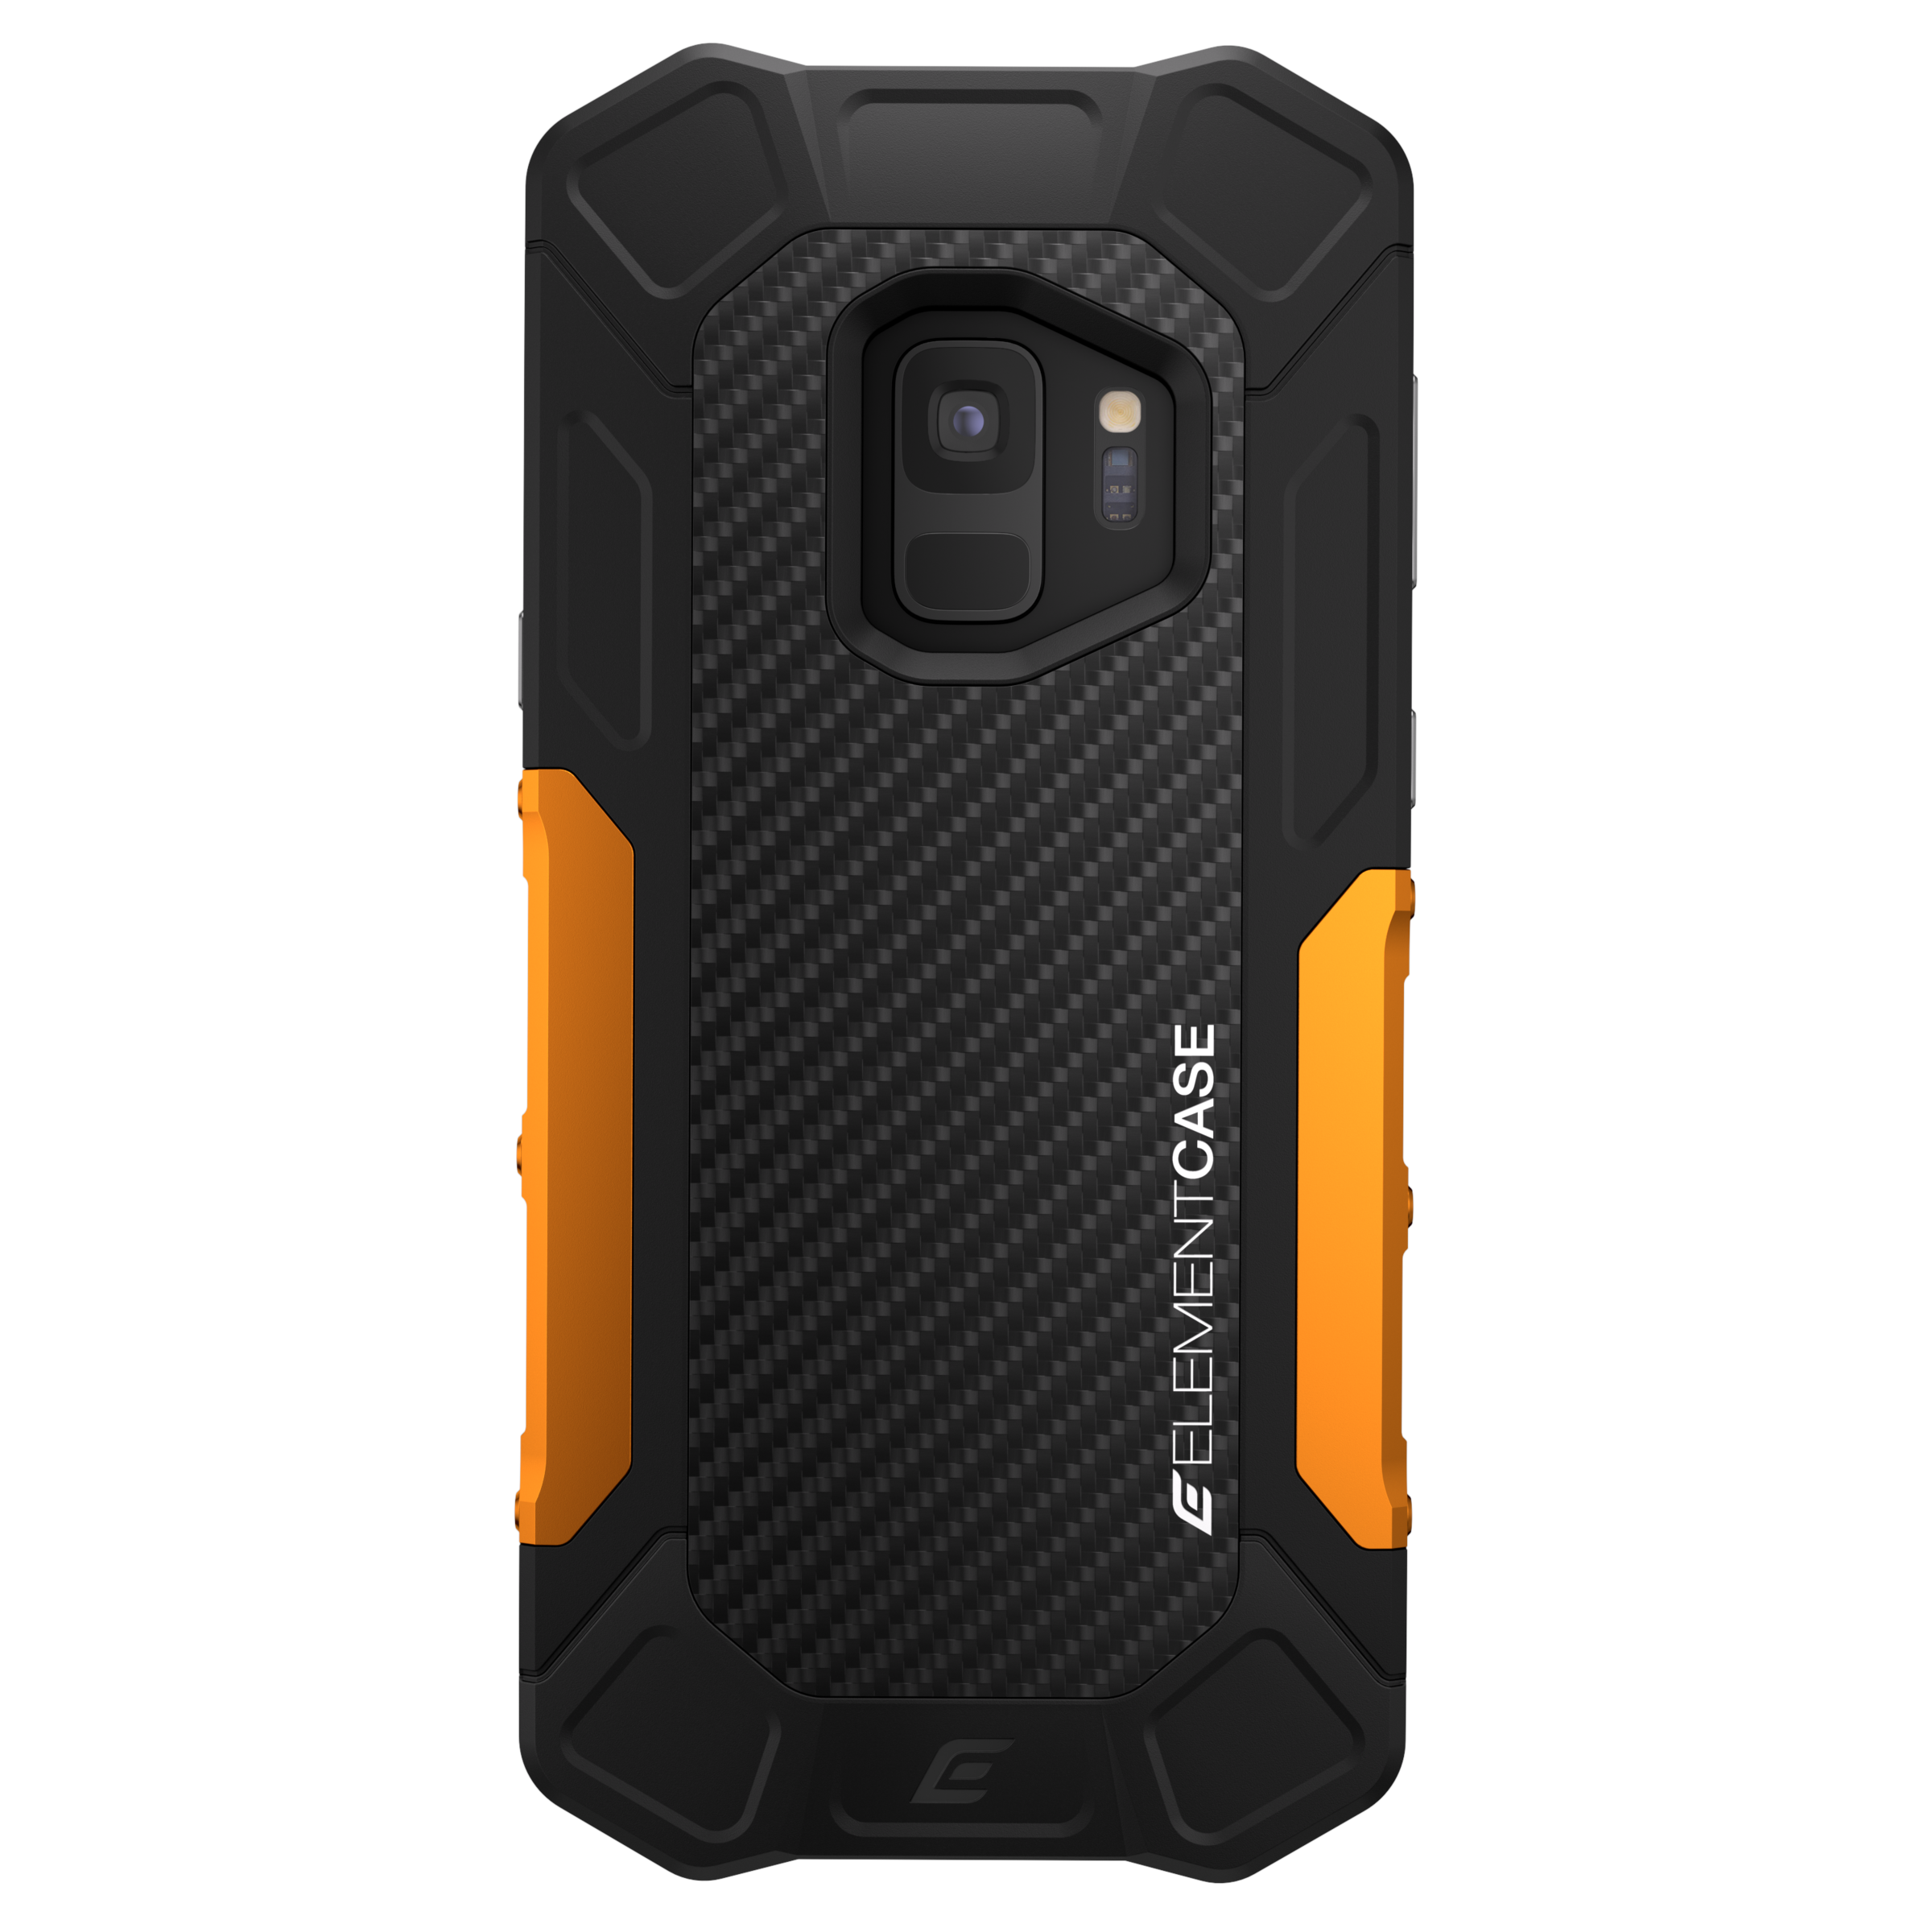 FORMULA S9 BLACK-ORANGE Orth Back.png